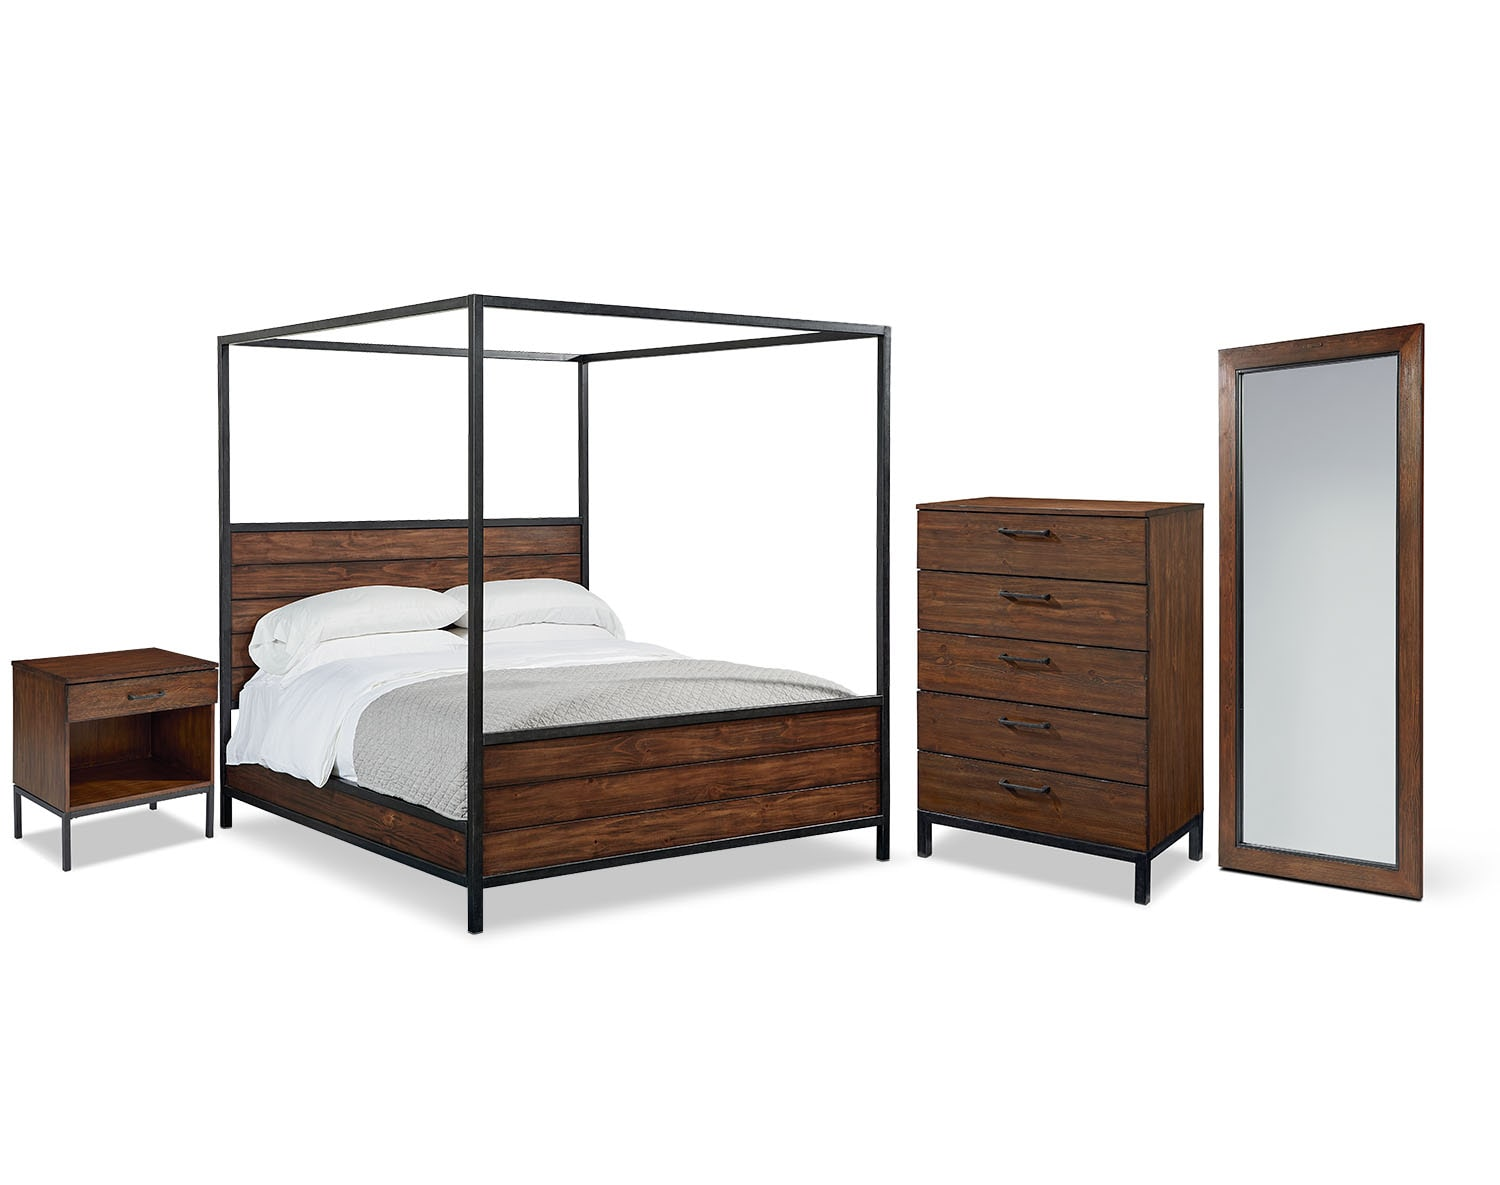 The Industrial Framework Canopy Bedroom Collection